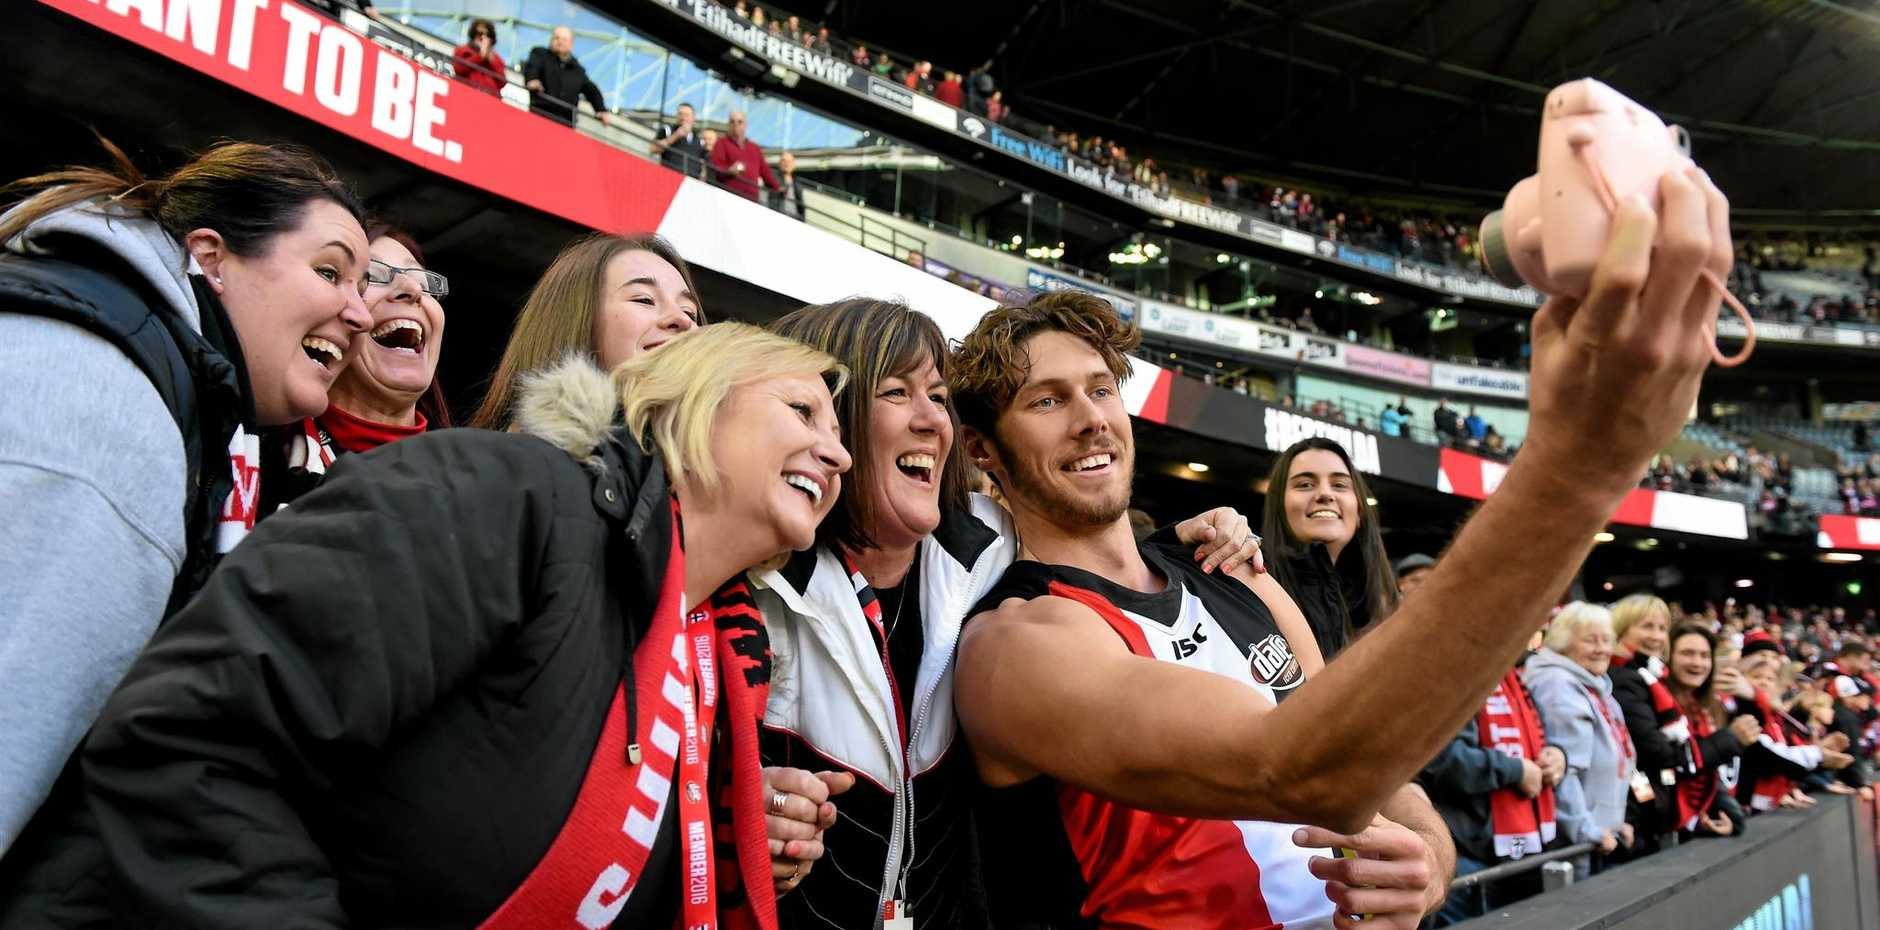 SEEKING CONSISTENCY: Tom Hickey of the Saints takes a selfie with fans as he celebrates winning their Round 12 AFL match against Carlton at Etihad Stadium.